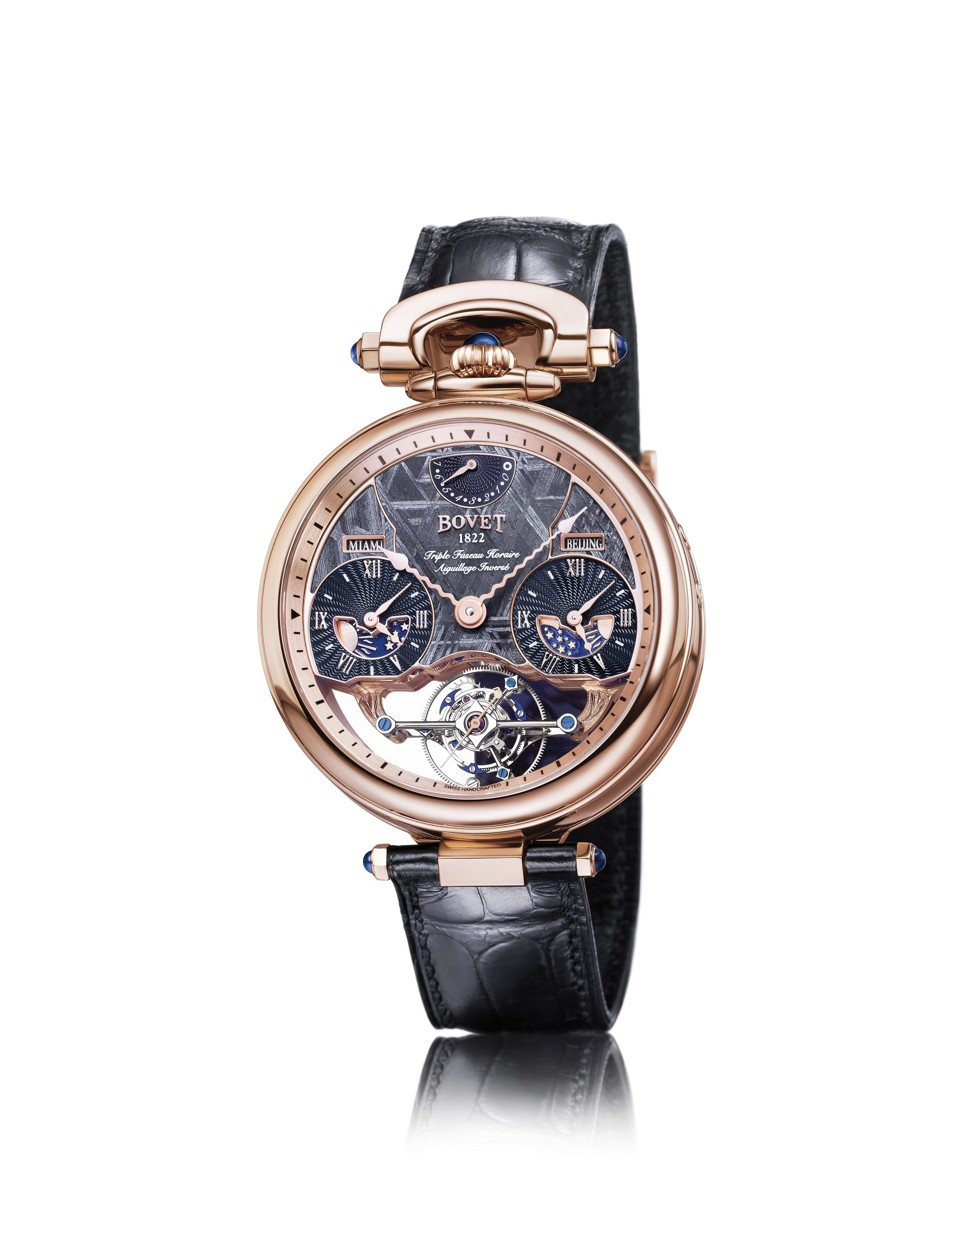 bovet watches pr wristwatch fleurier luxury a connoisseurs for cmyk prcmyk